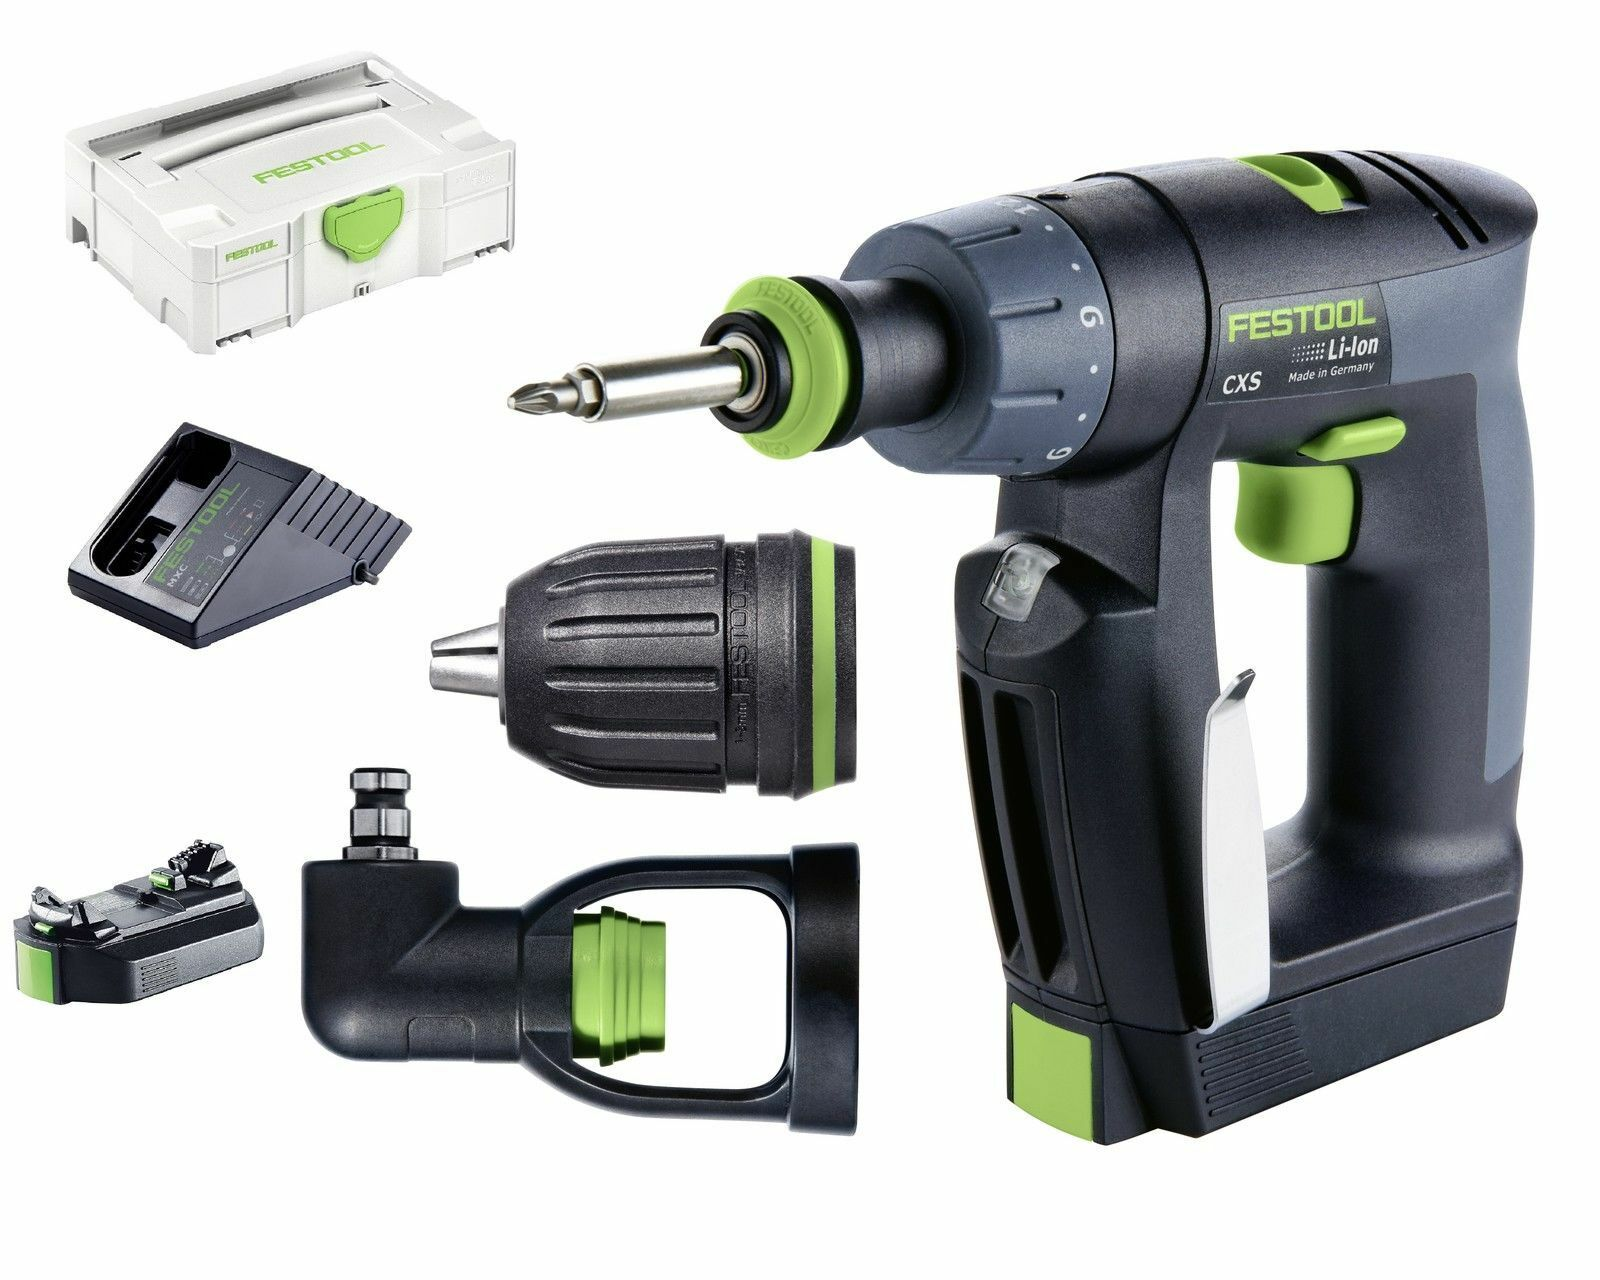 festool akkuschrauber akku bohrschrauber cxs li 2 6 set 10 8 v 564532 systainer eur 264 90. Black Bedroom Furniture Sets. Home Design Ideas